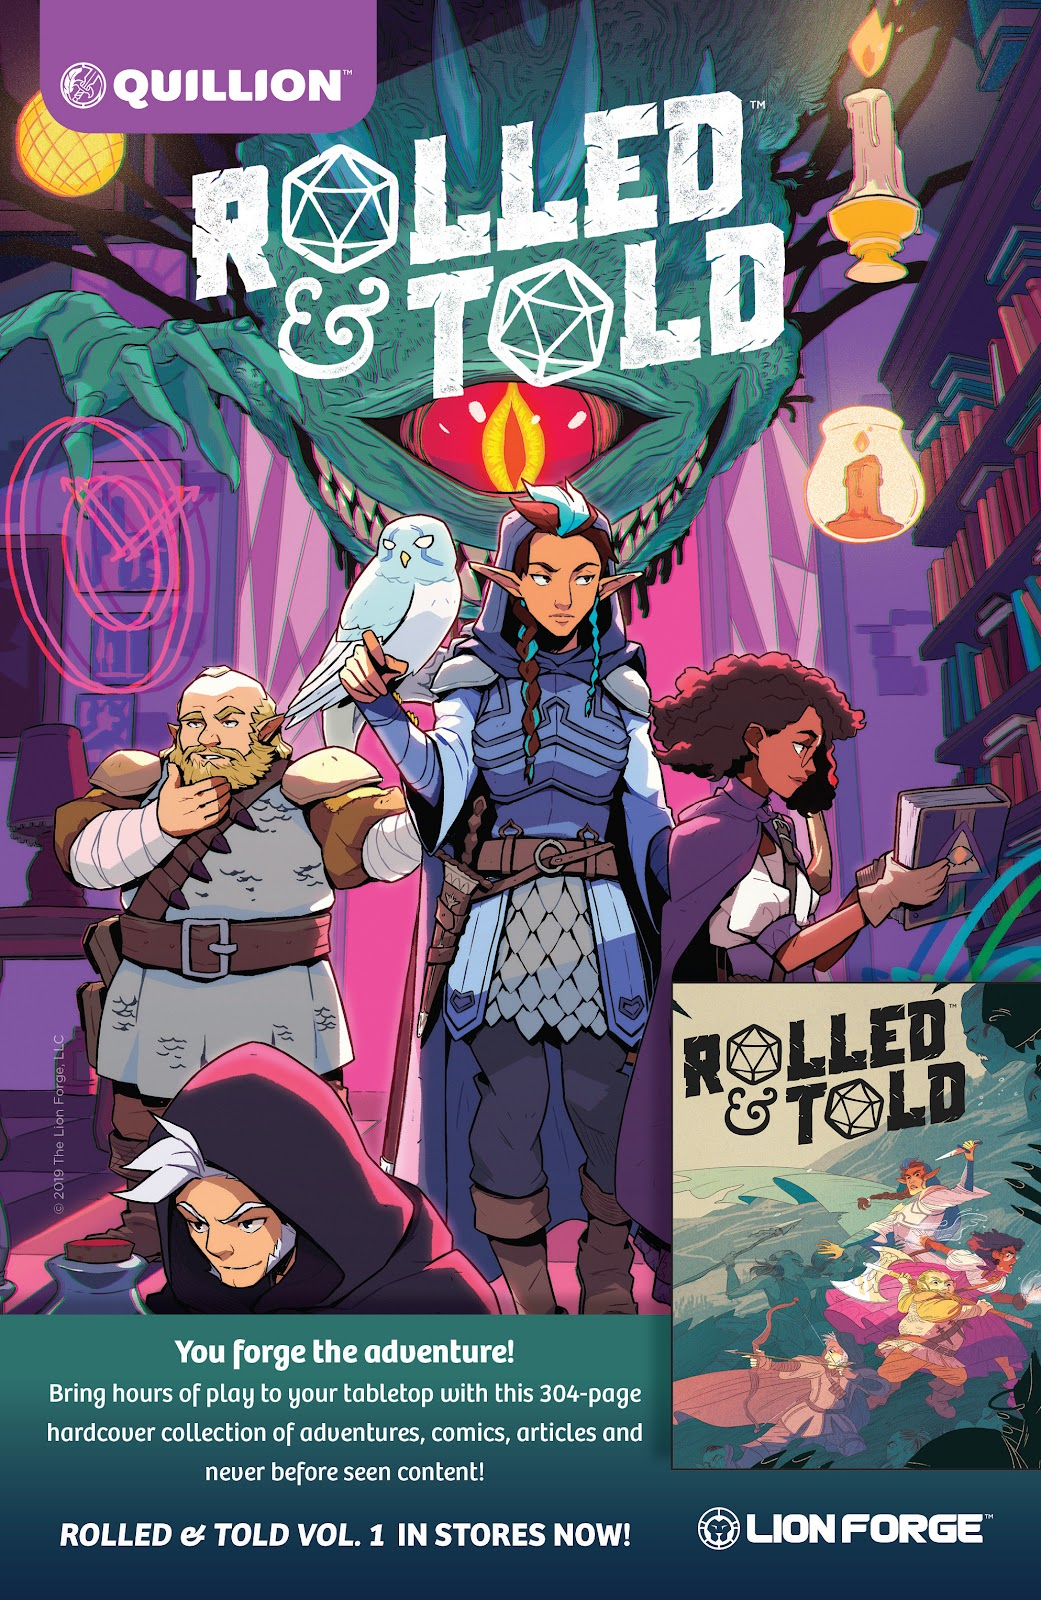 Read online Rolled & Told comic -  Issue #11 - 2